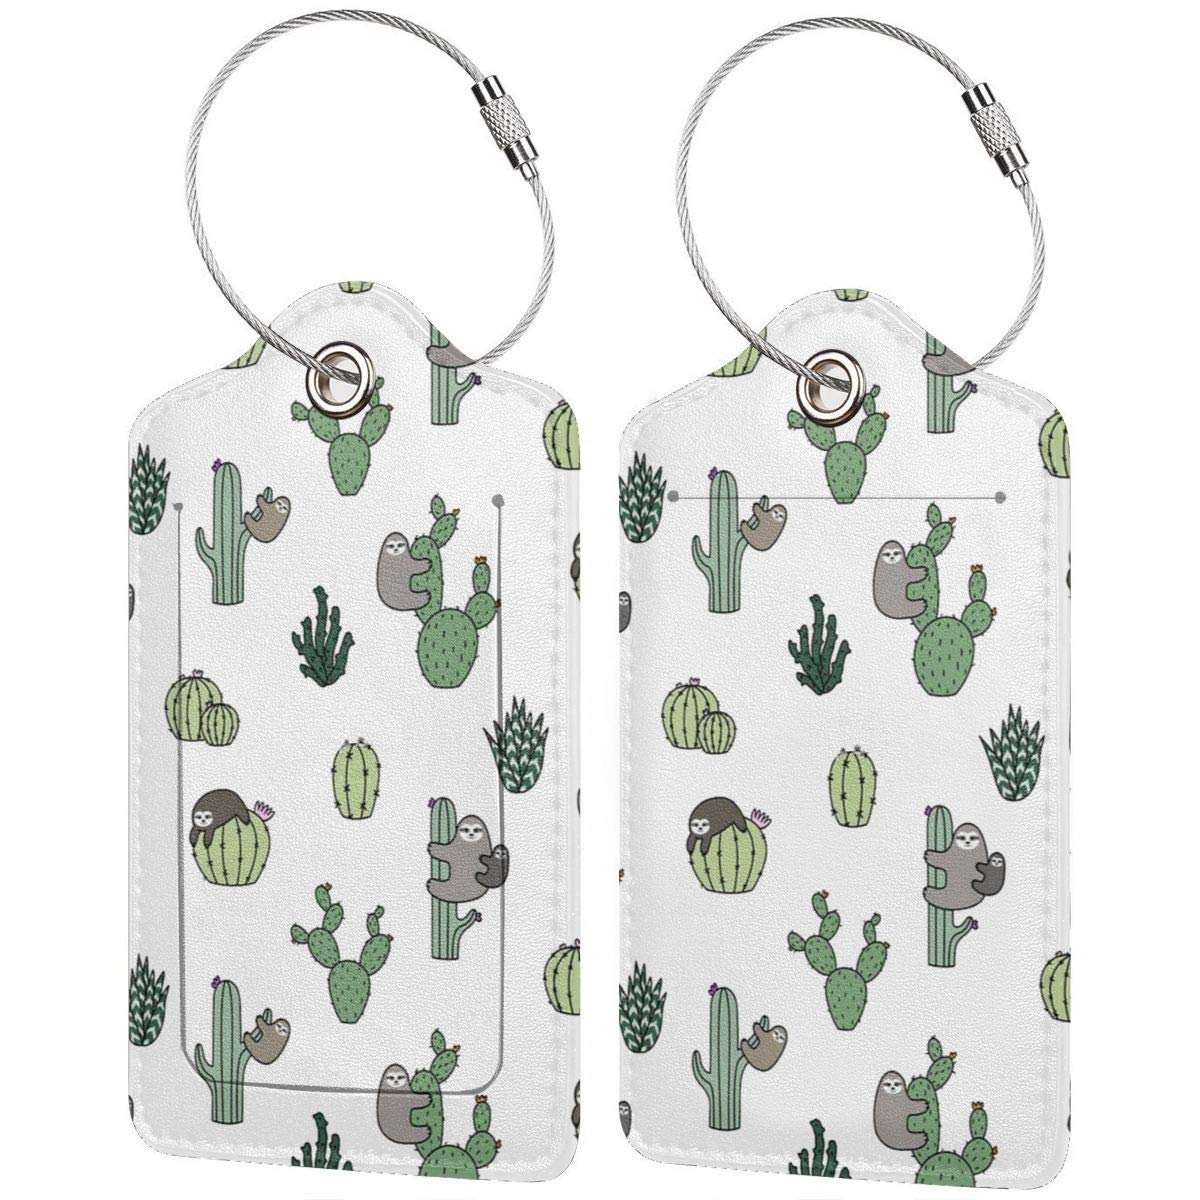 GoldK Cactus Sloth Leather Luggage Tags Baggage Bag Instrument Tag Travel Labels Accessories with Privacy Cover